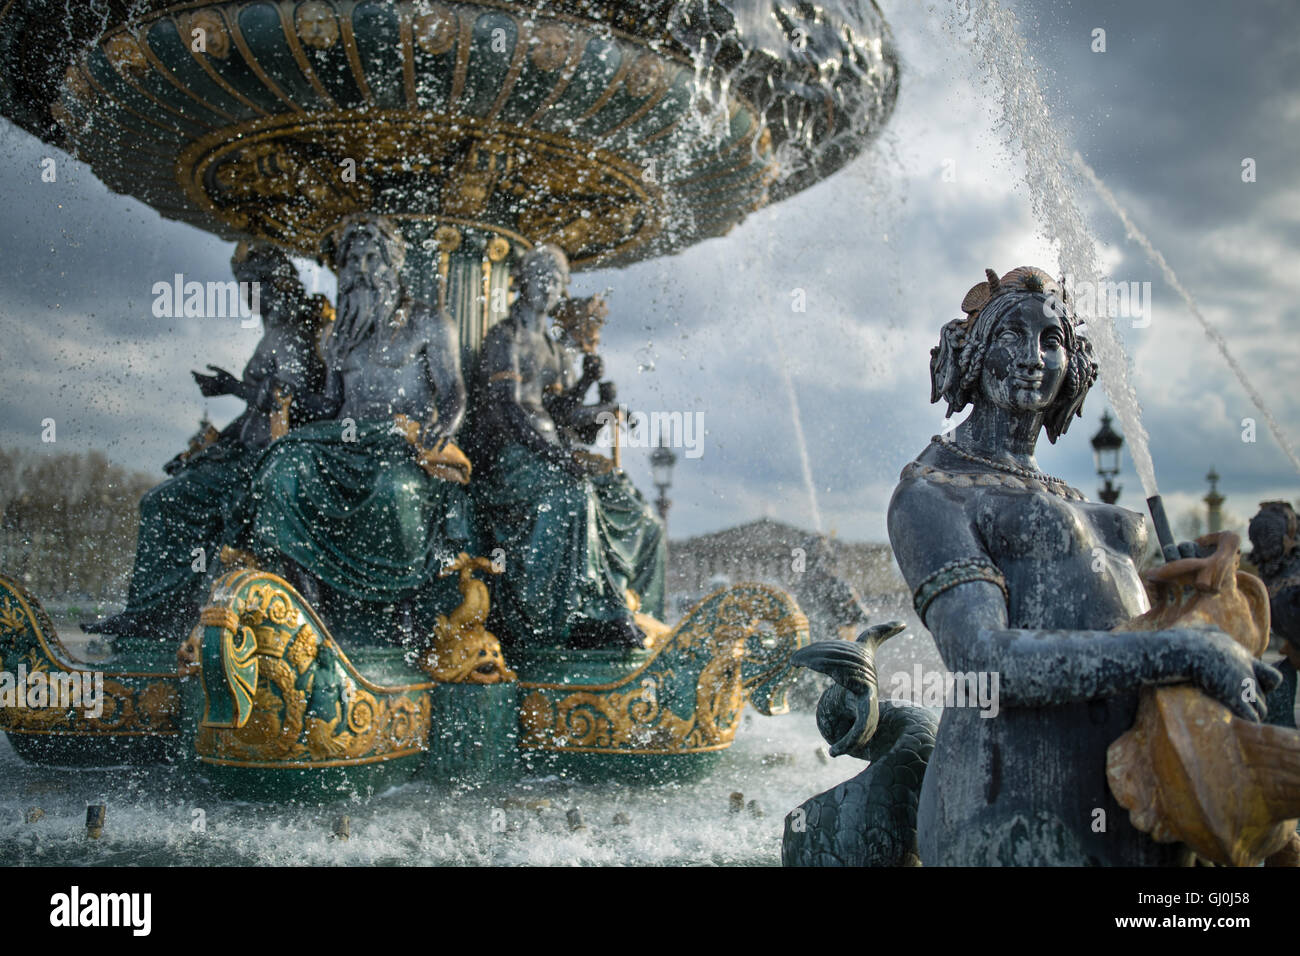 the fountains in the Place de la Concorde, Paris, France - Stock Image